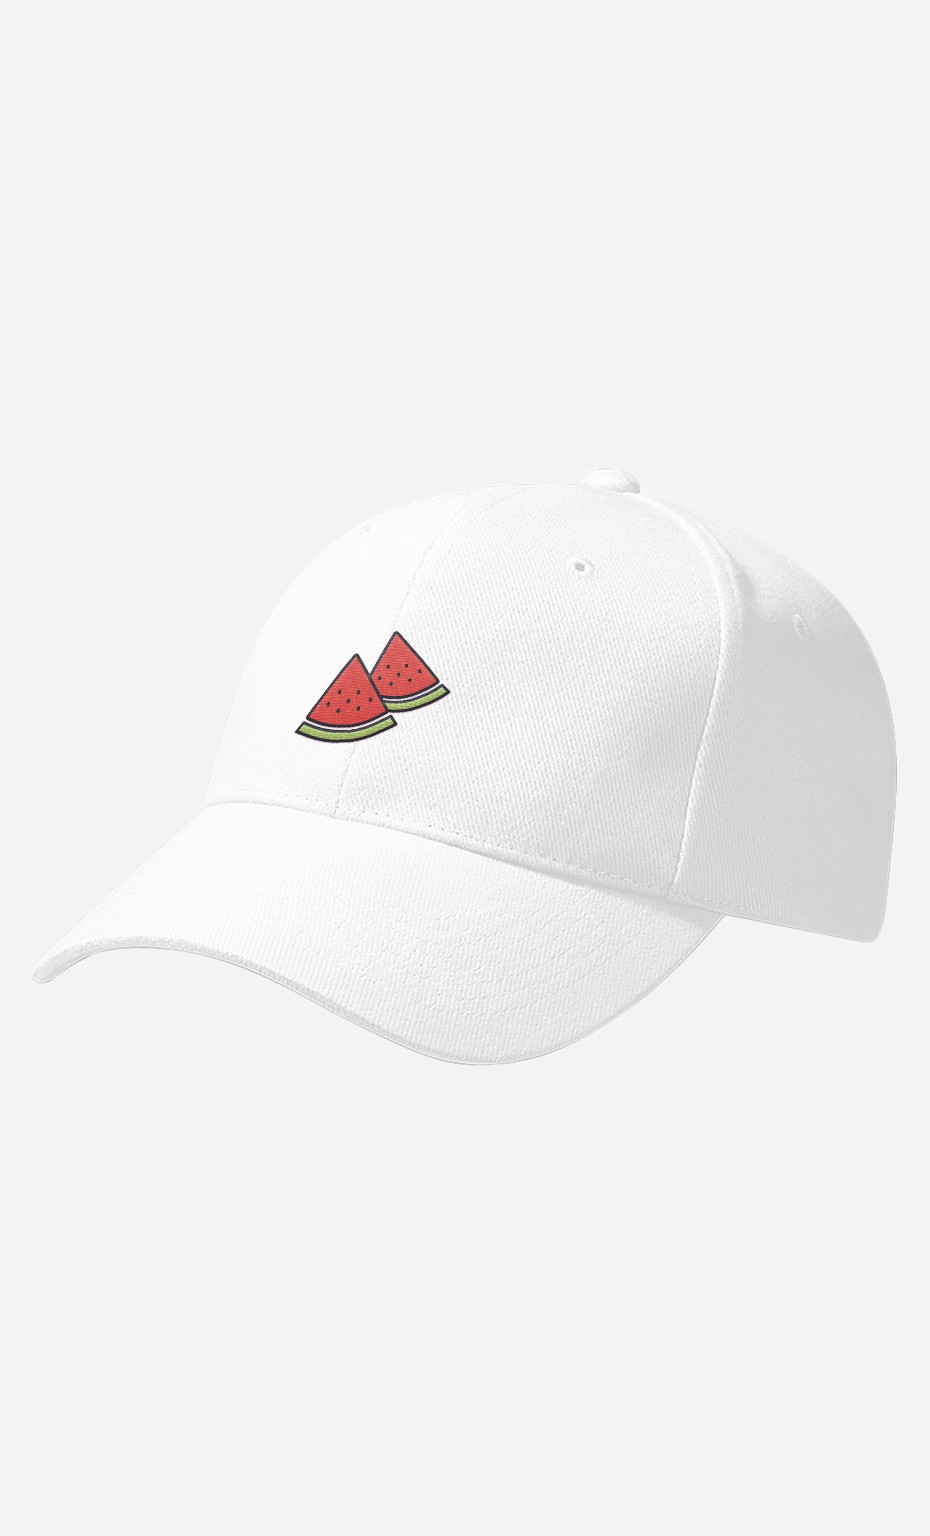 Cap Watermelon